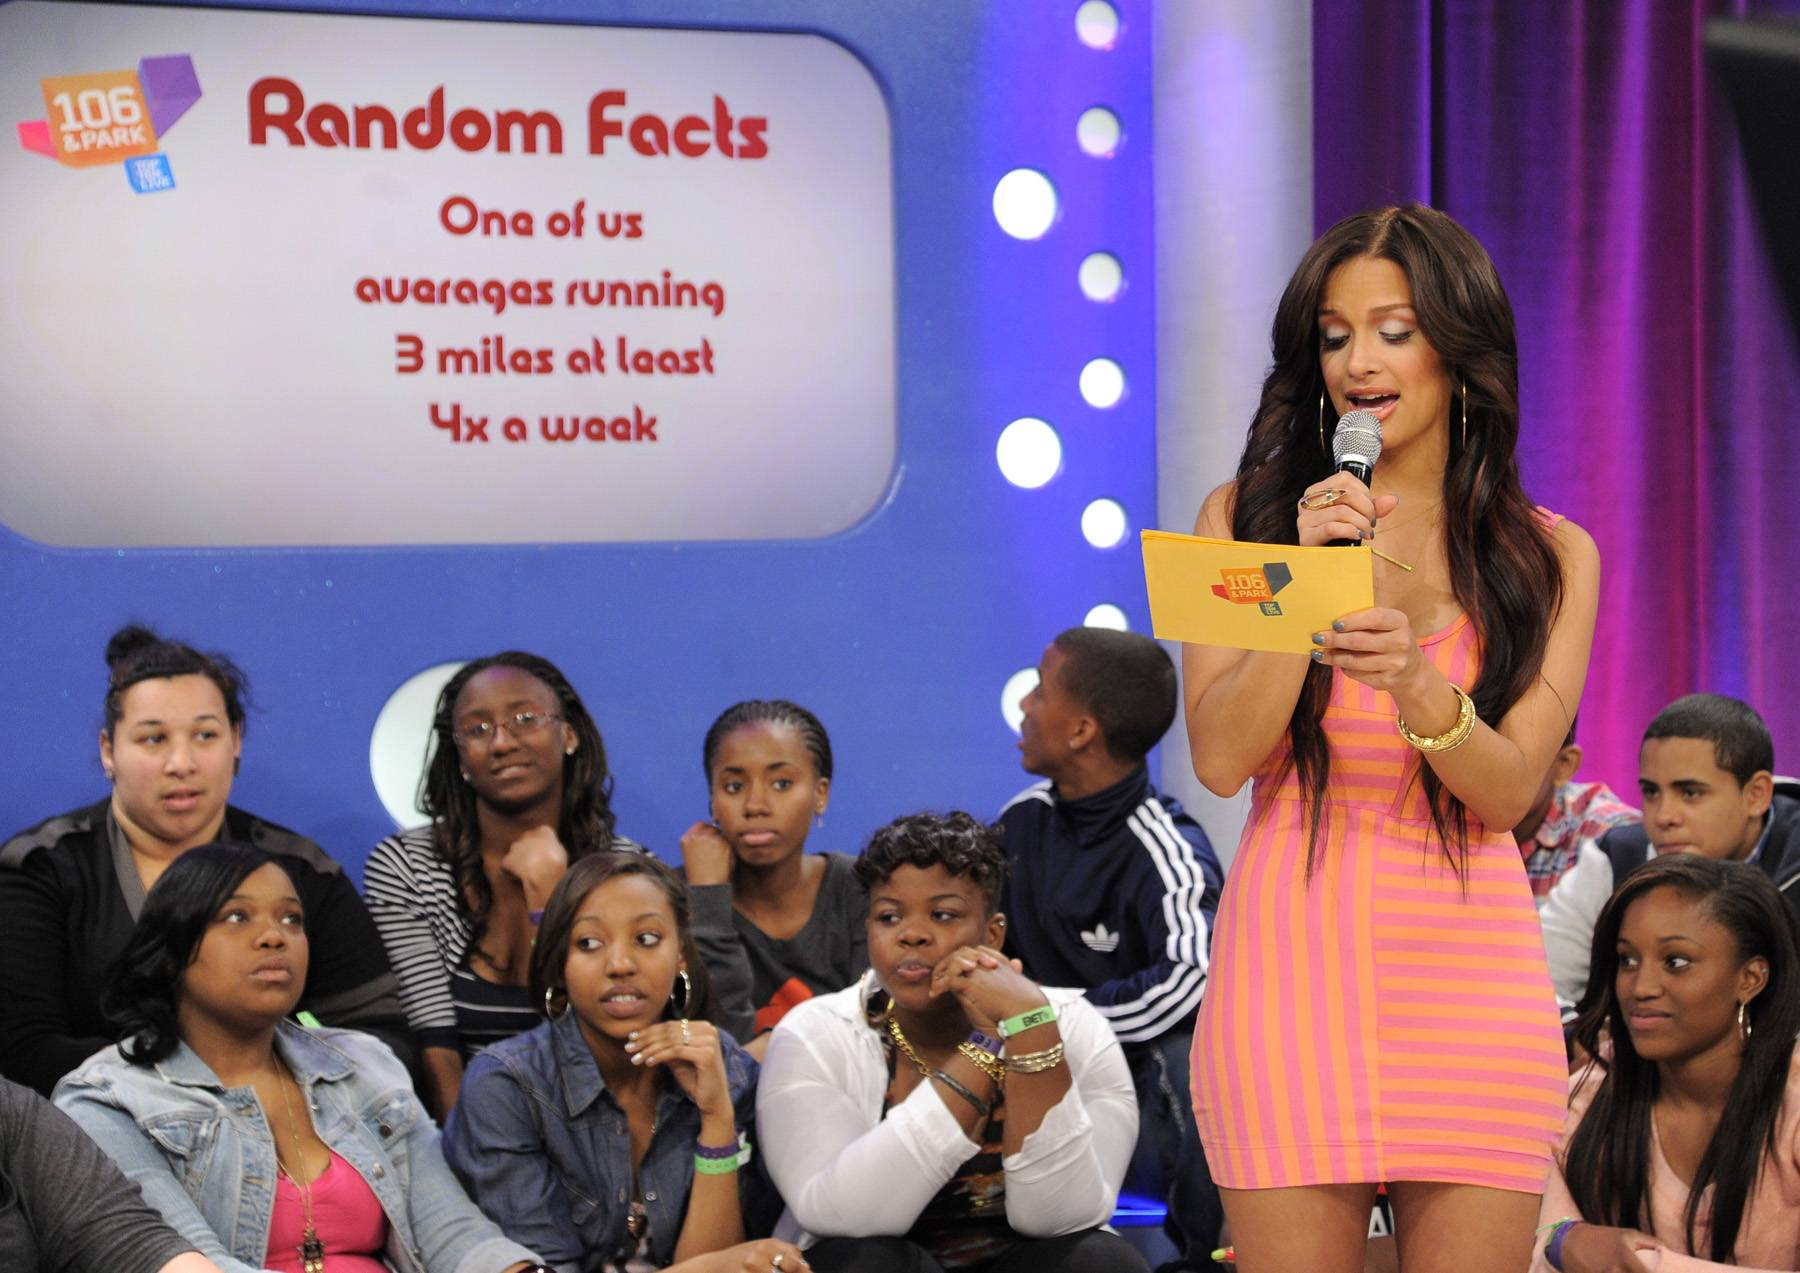 Someone Likes To Run - Rocsi Diaz and Pooch Hall does random facts with audience members at 106 & Park, April 12, 2012. (Photo: John Ricard / BET)